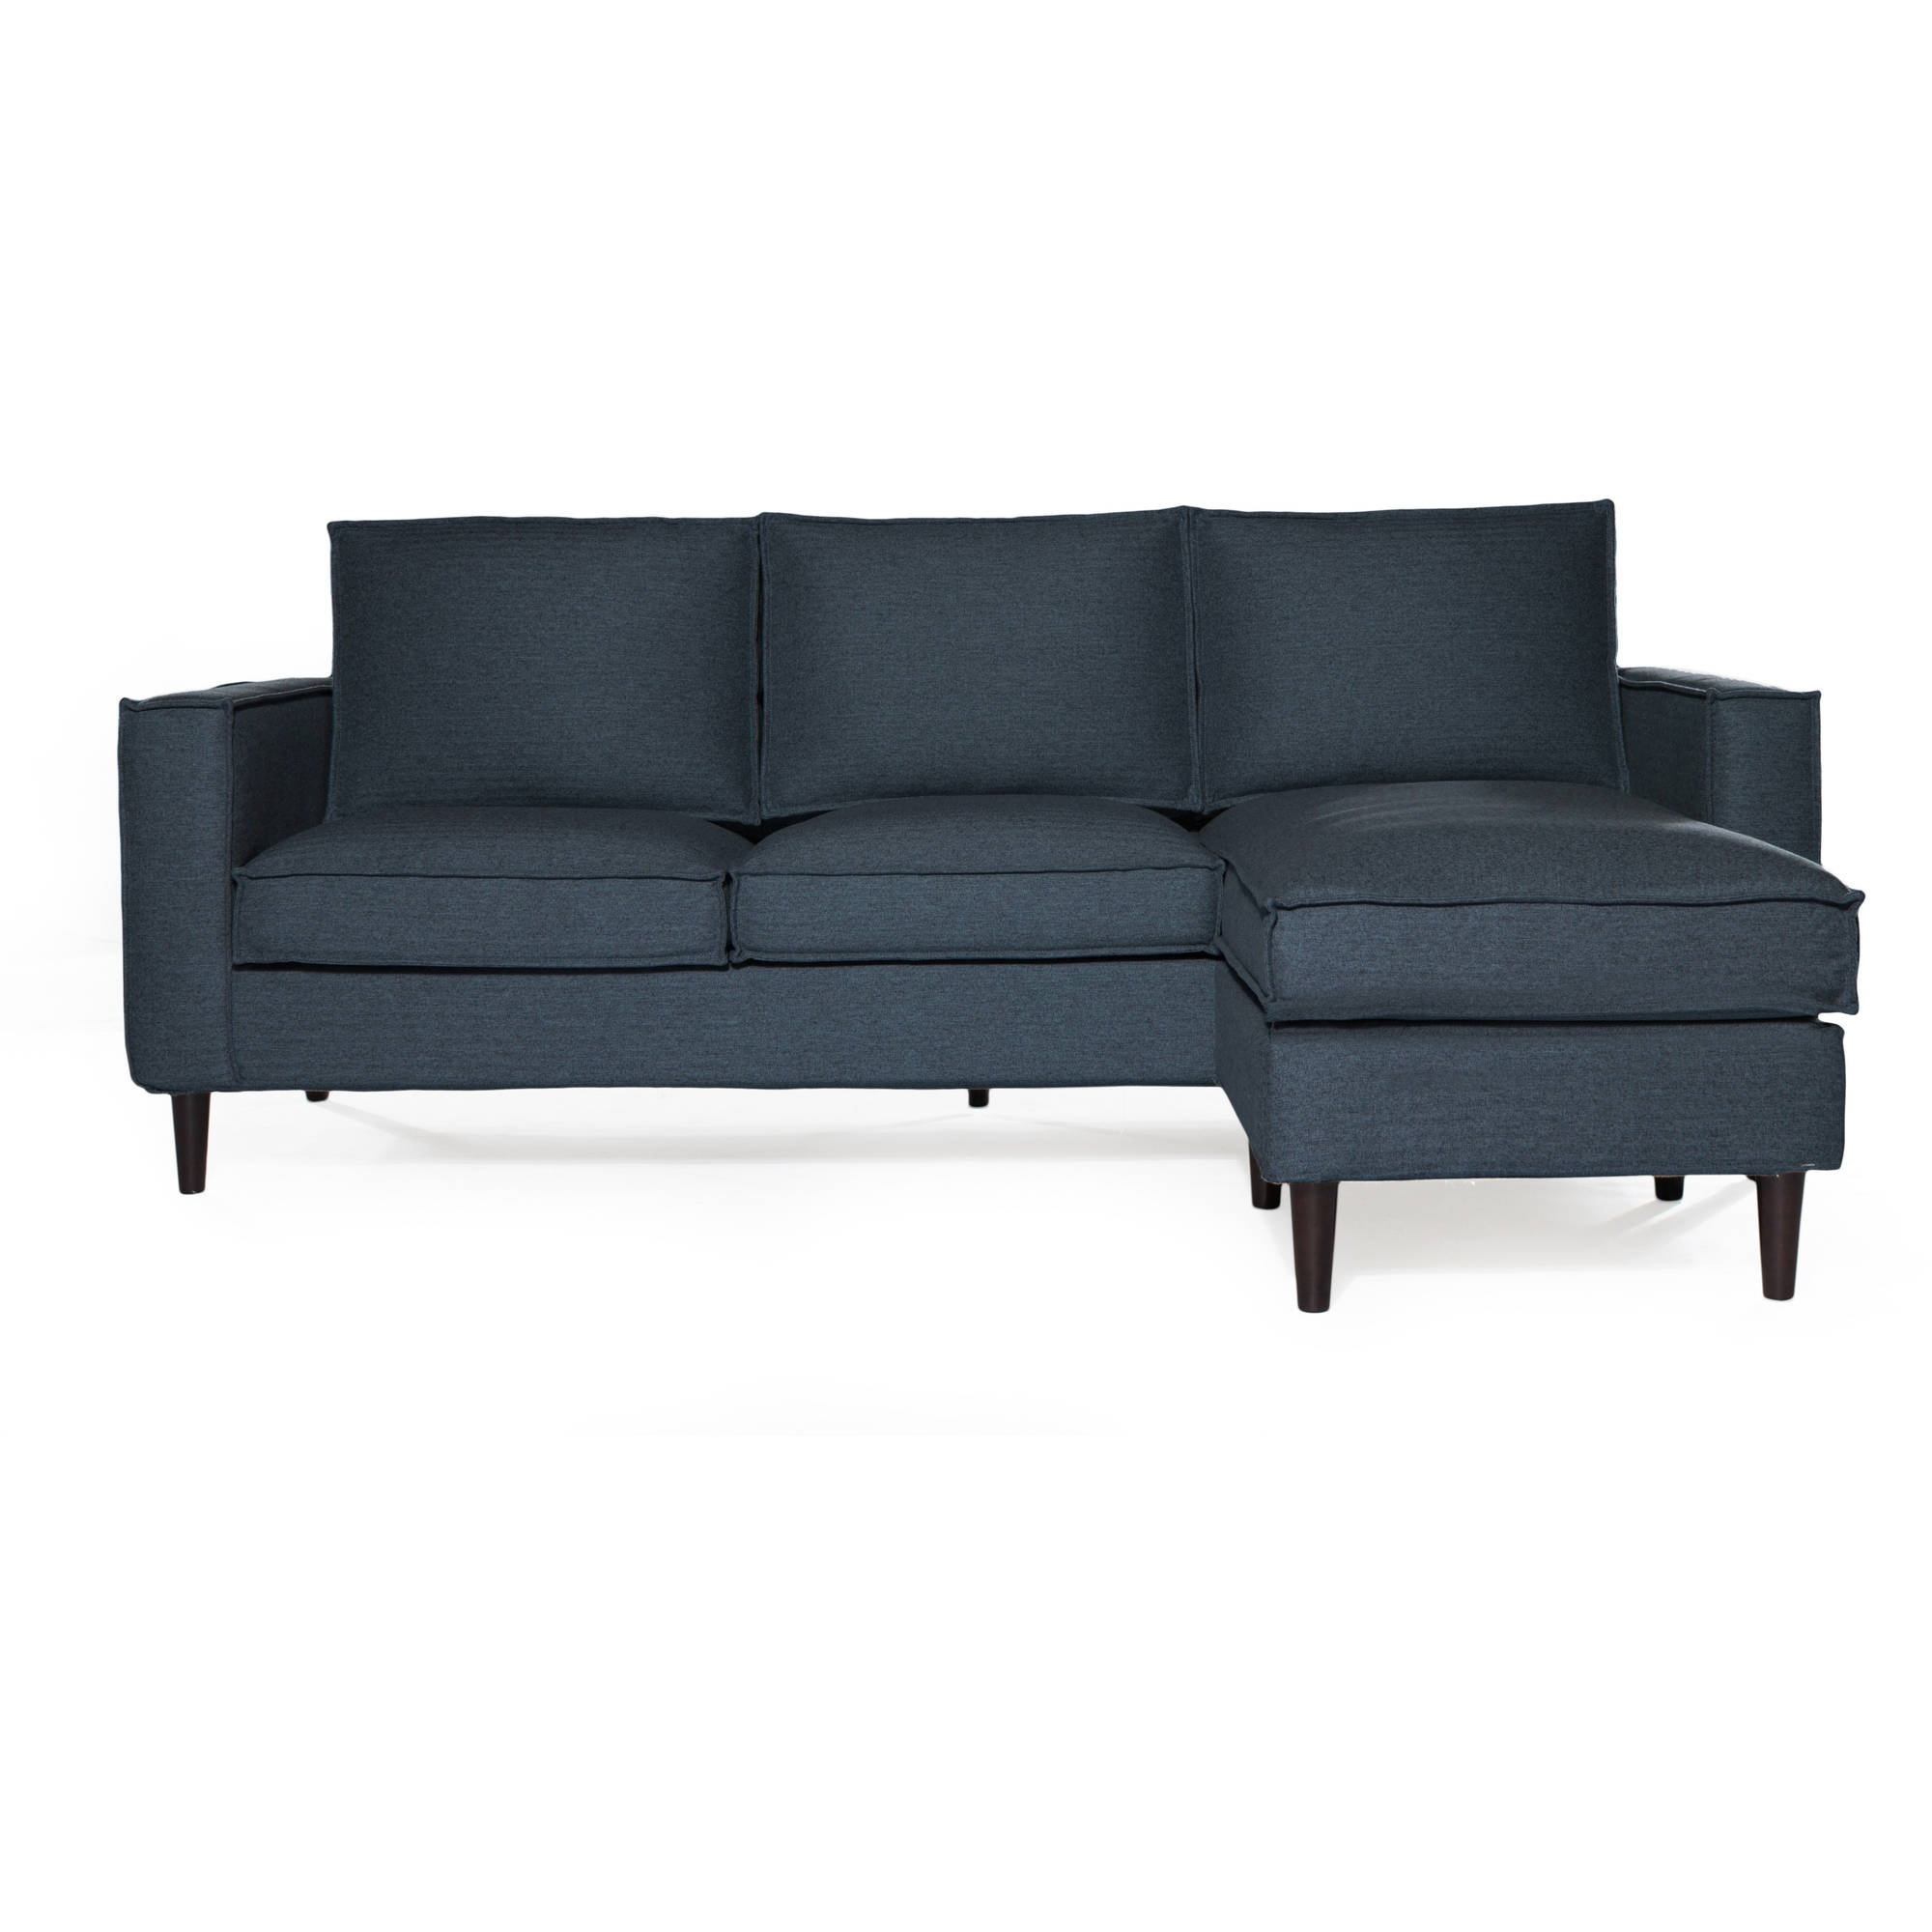 Sofas & Couches – Walmart Intended For Michigan Sectional Sofas (Image 10 of 10)